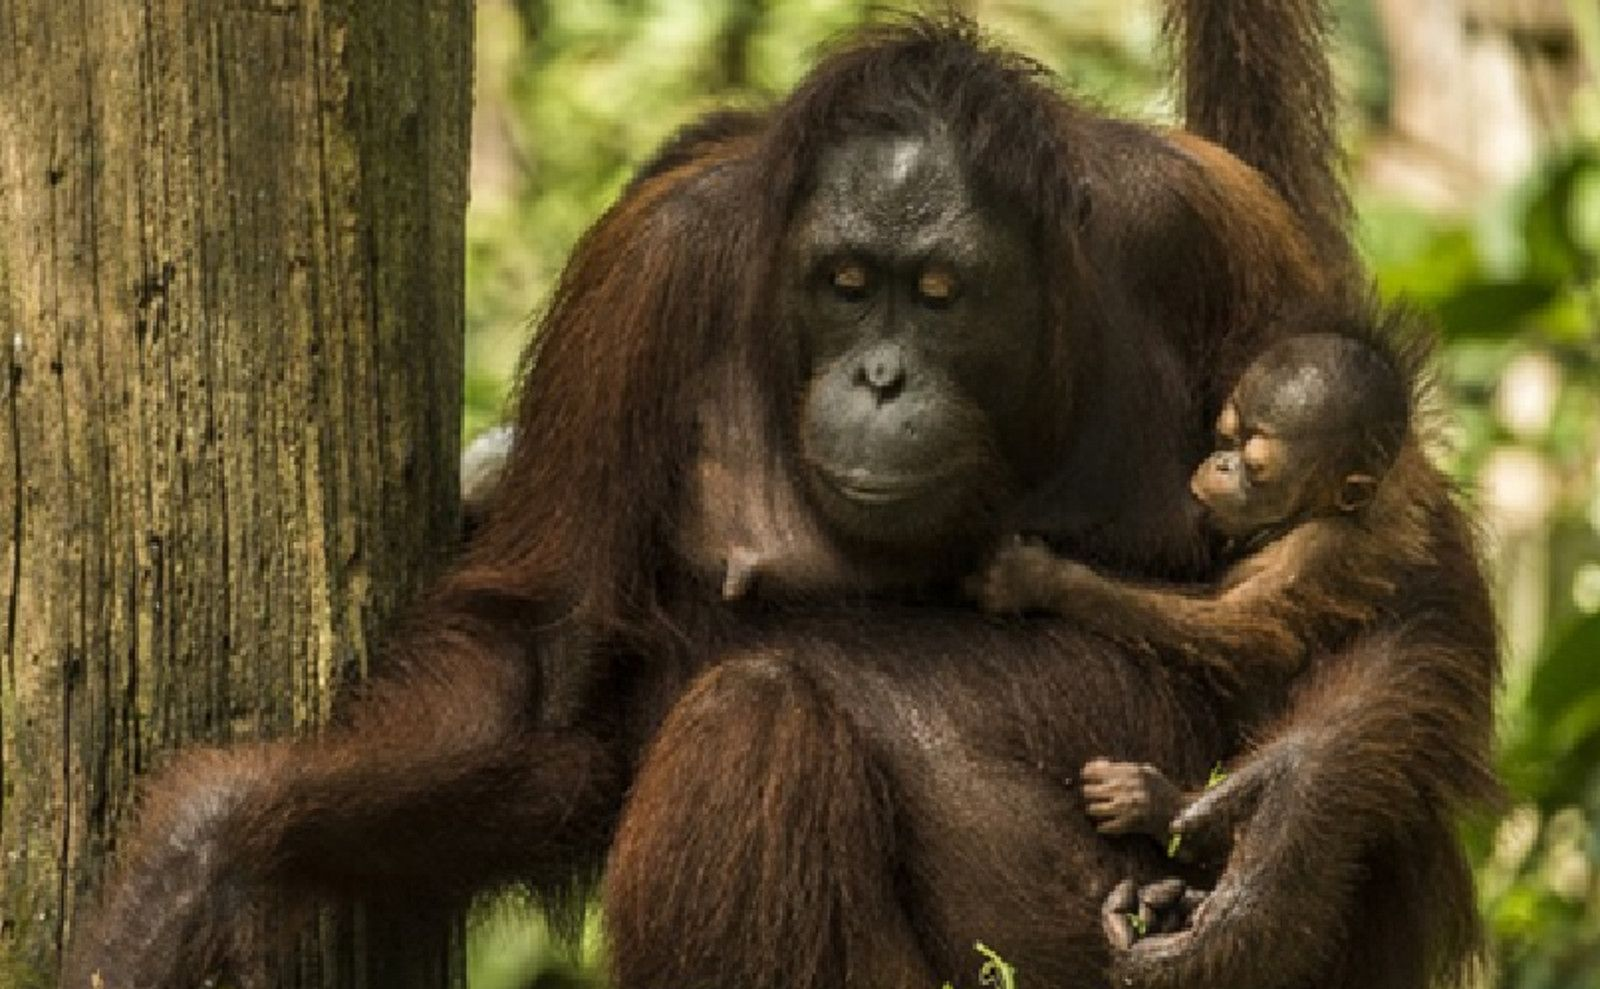 Stark Reminder of How Palm Oil Has Changed the Natural